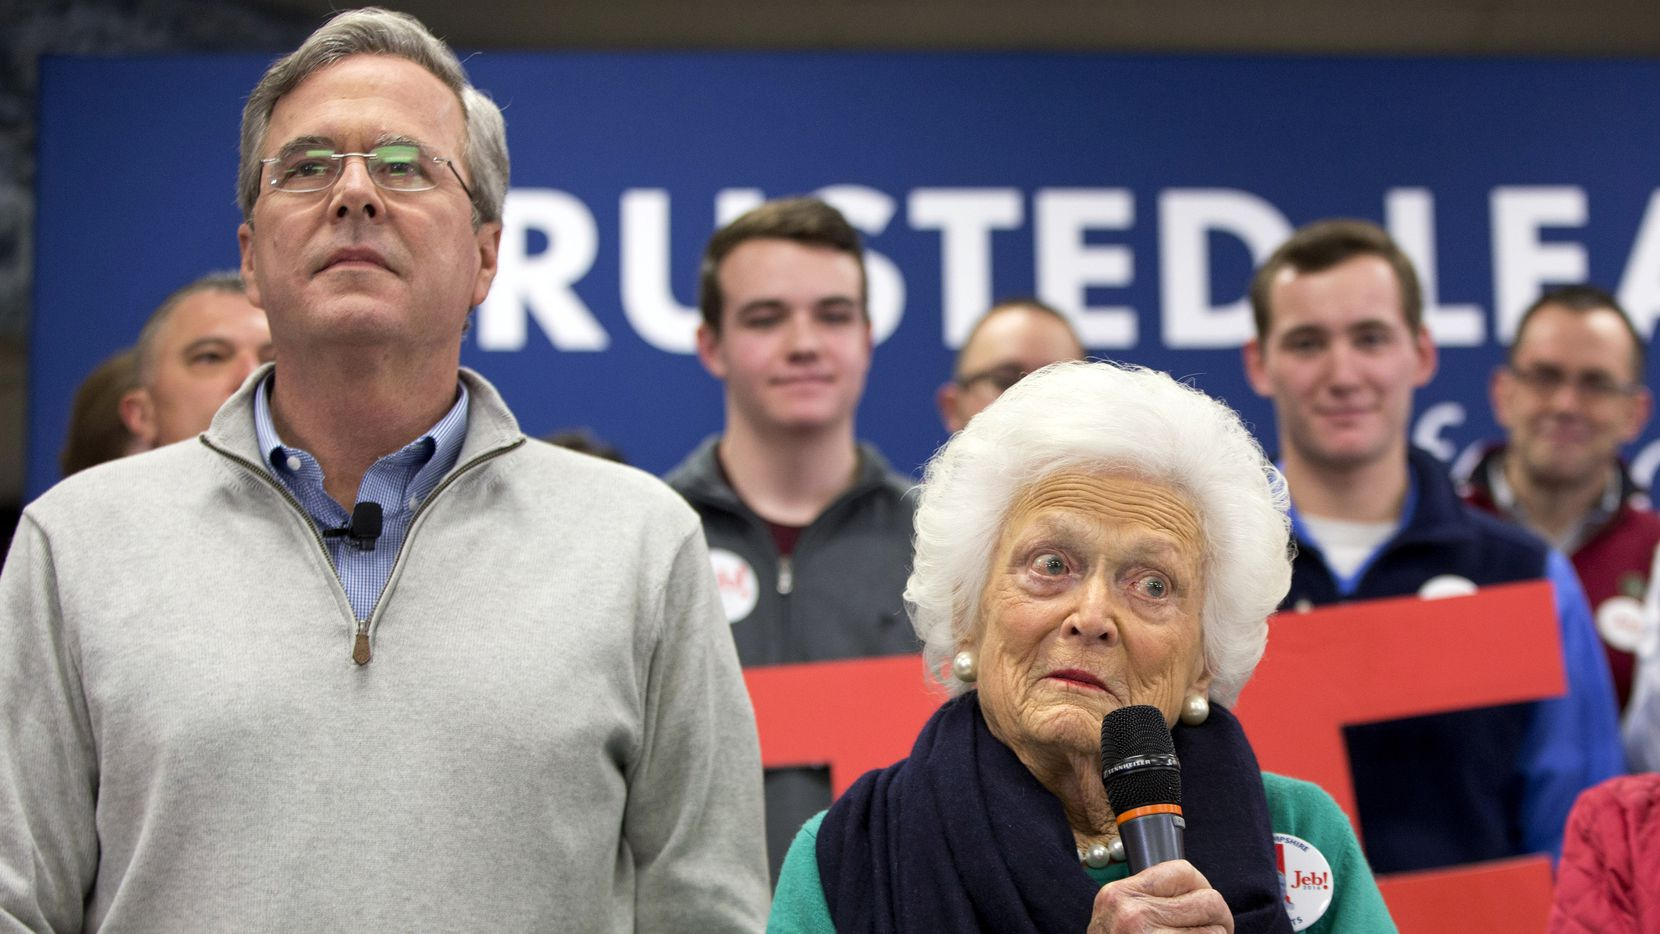 Former Florida Gov. Jeb Bush, left, and mother Barbara Bush, right, speak at a town hall meeting at West Running Brook Middle School in Derry, N.H., Thursday Feb. 4, 2016. (AP Photo/Jacquelyn Martin)